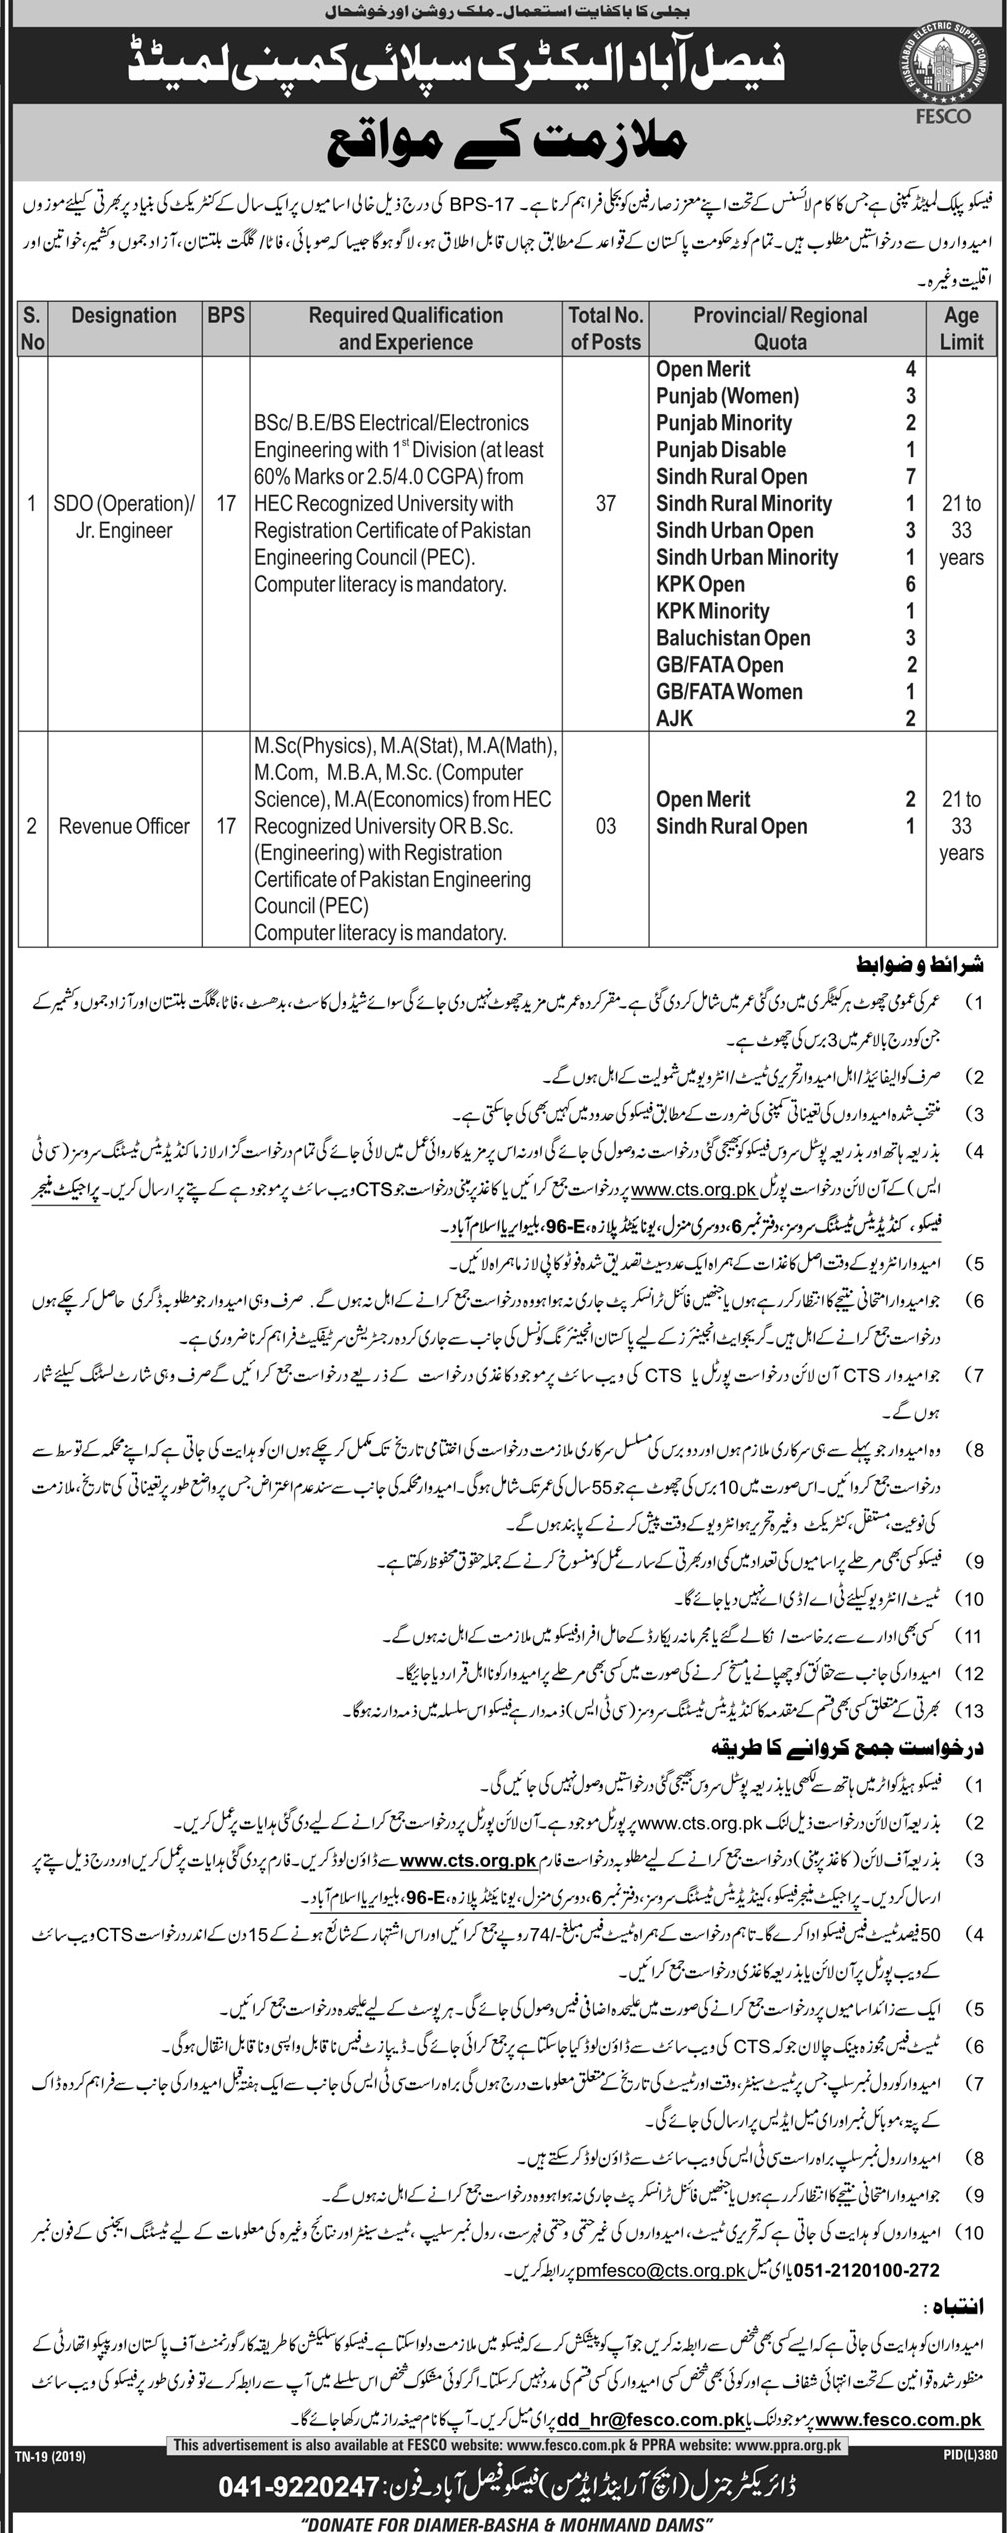 Faisalabad Electric Supply Company FESCO Jobs CTS Test Result